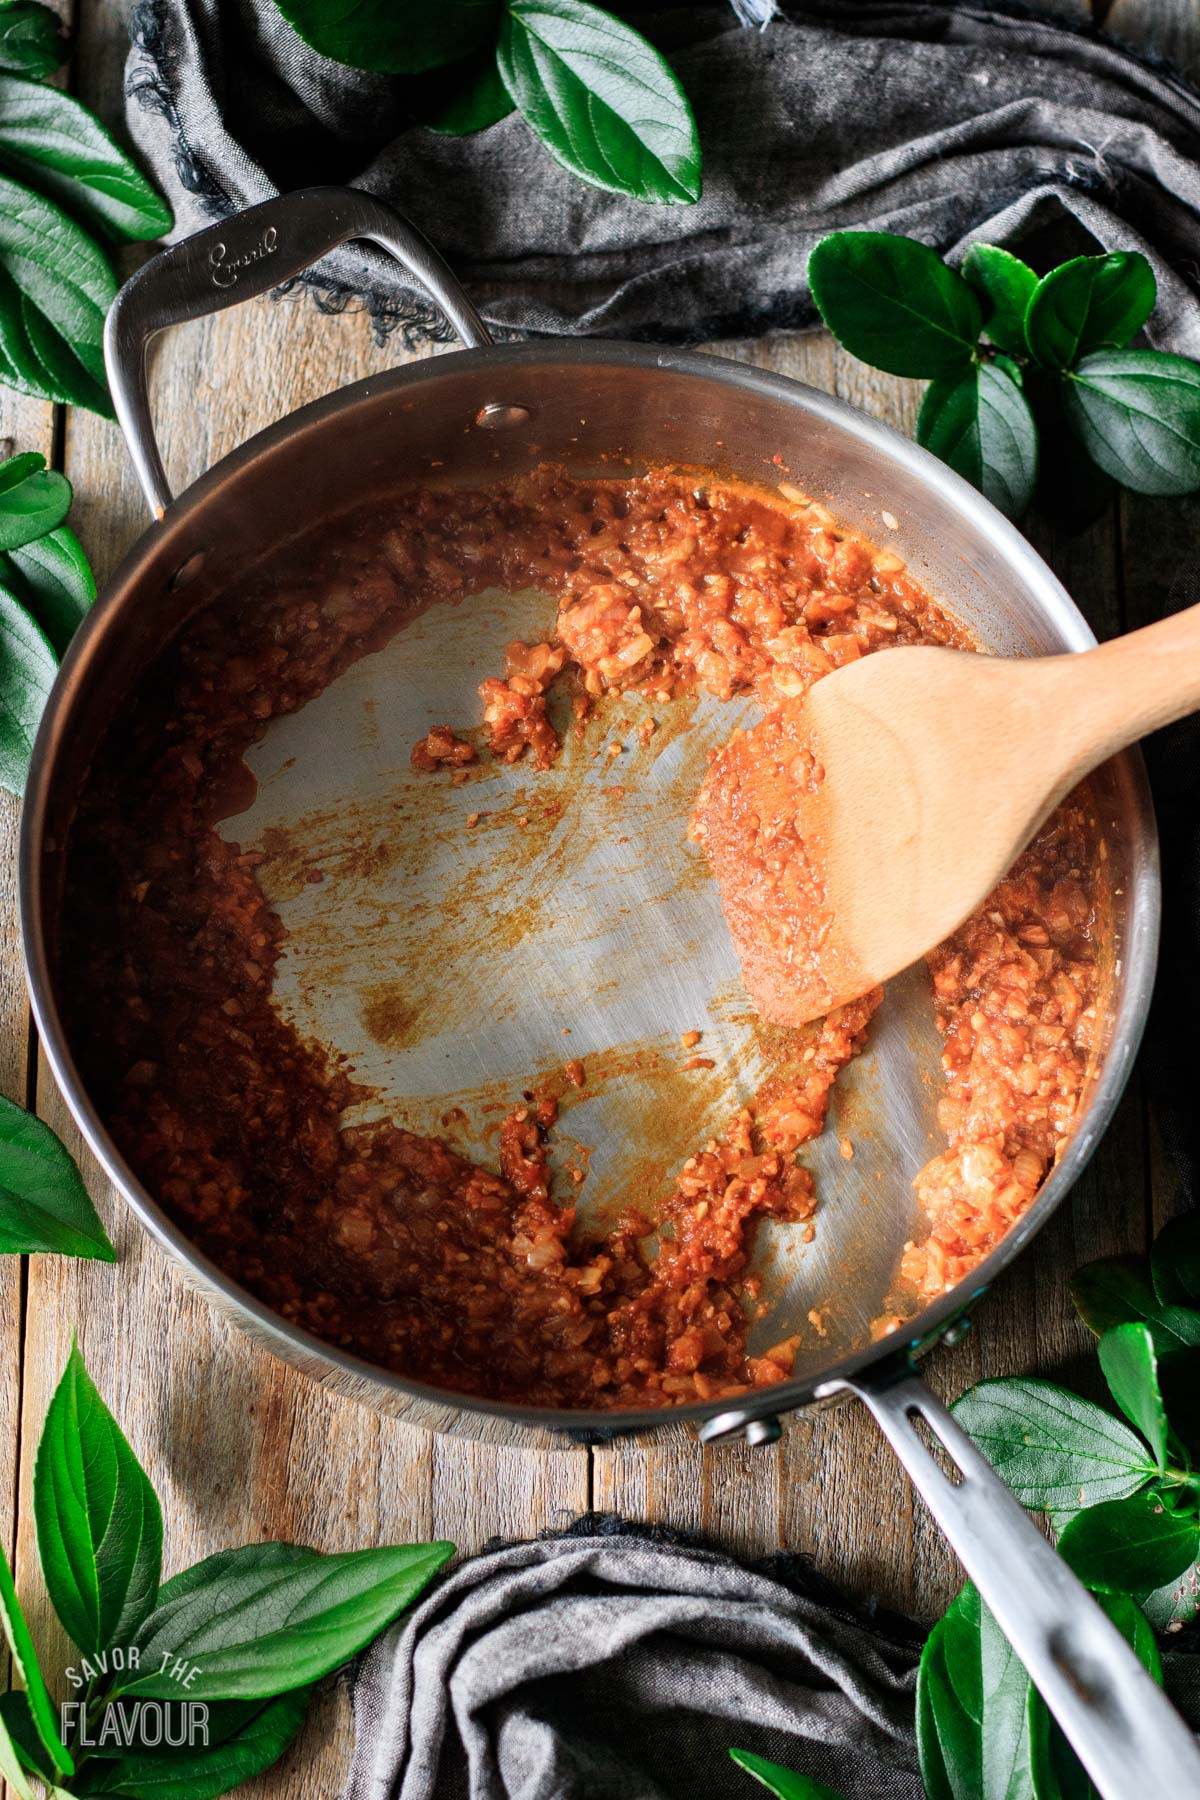 person stirring the vegetable and spice mixture in a skillet